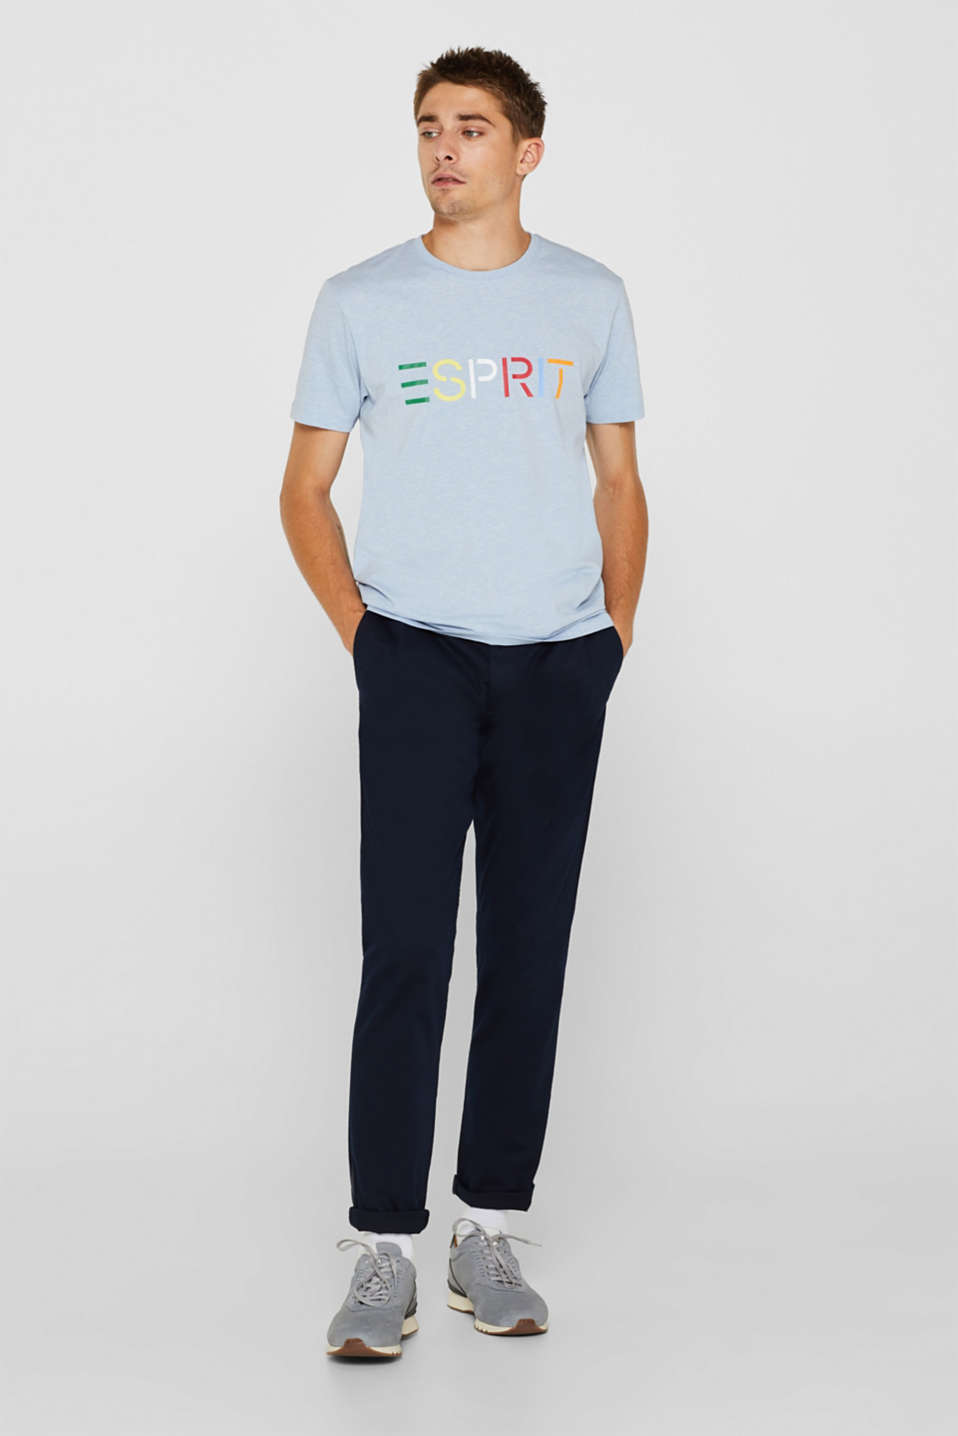 Jersey T-shirt with logo, made of blended cotton, LIGHT BLUE, detail image number 2